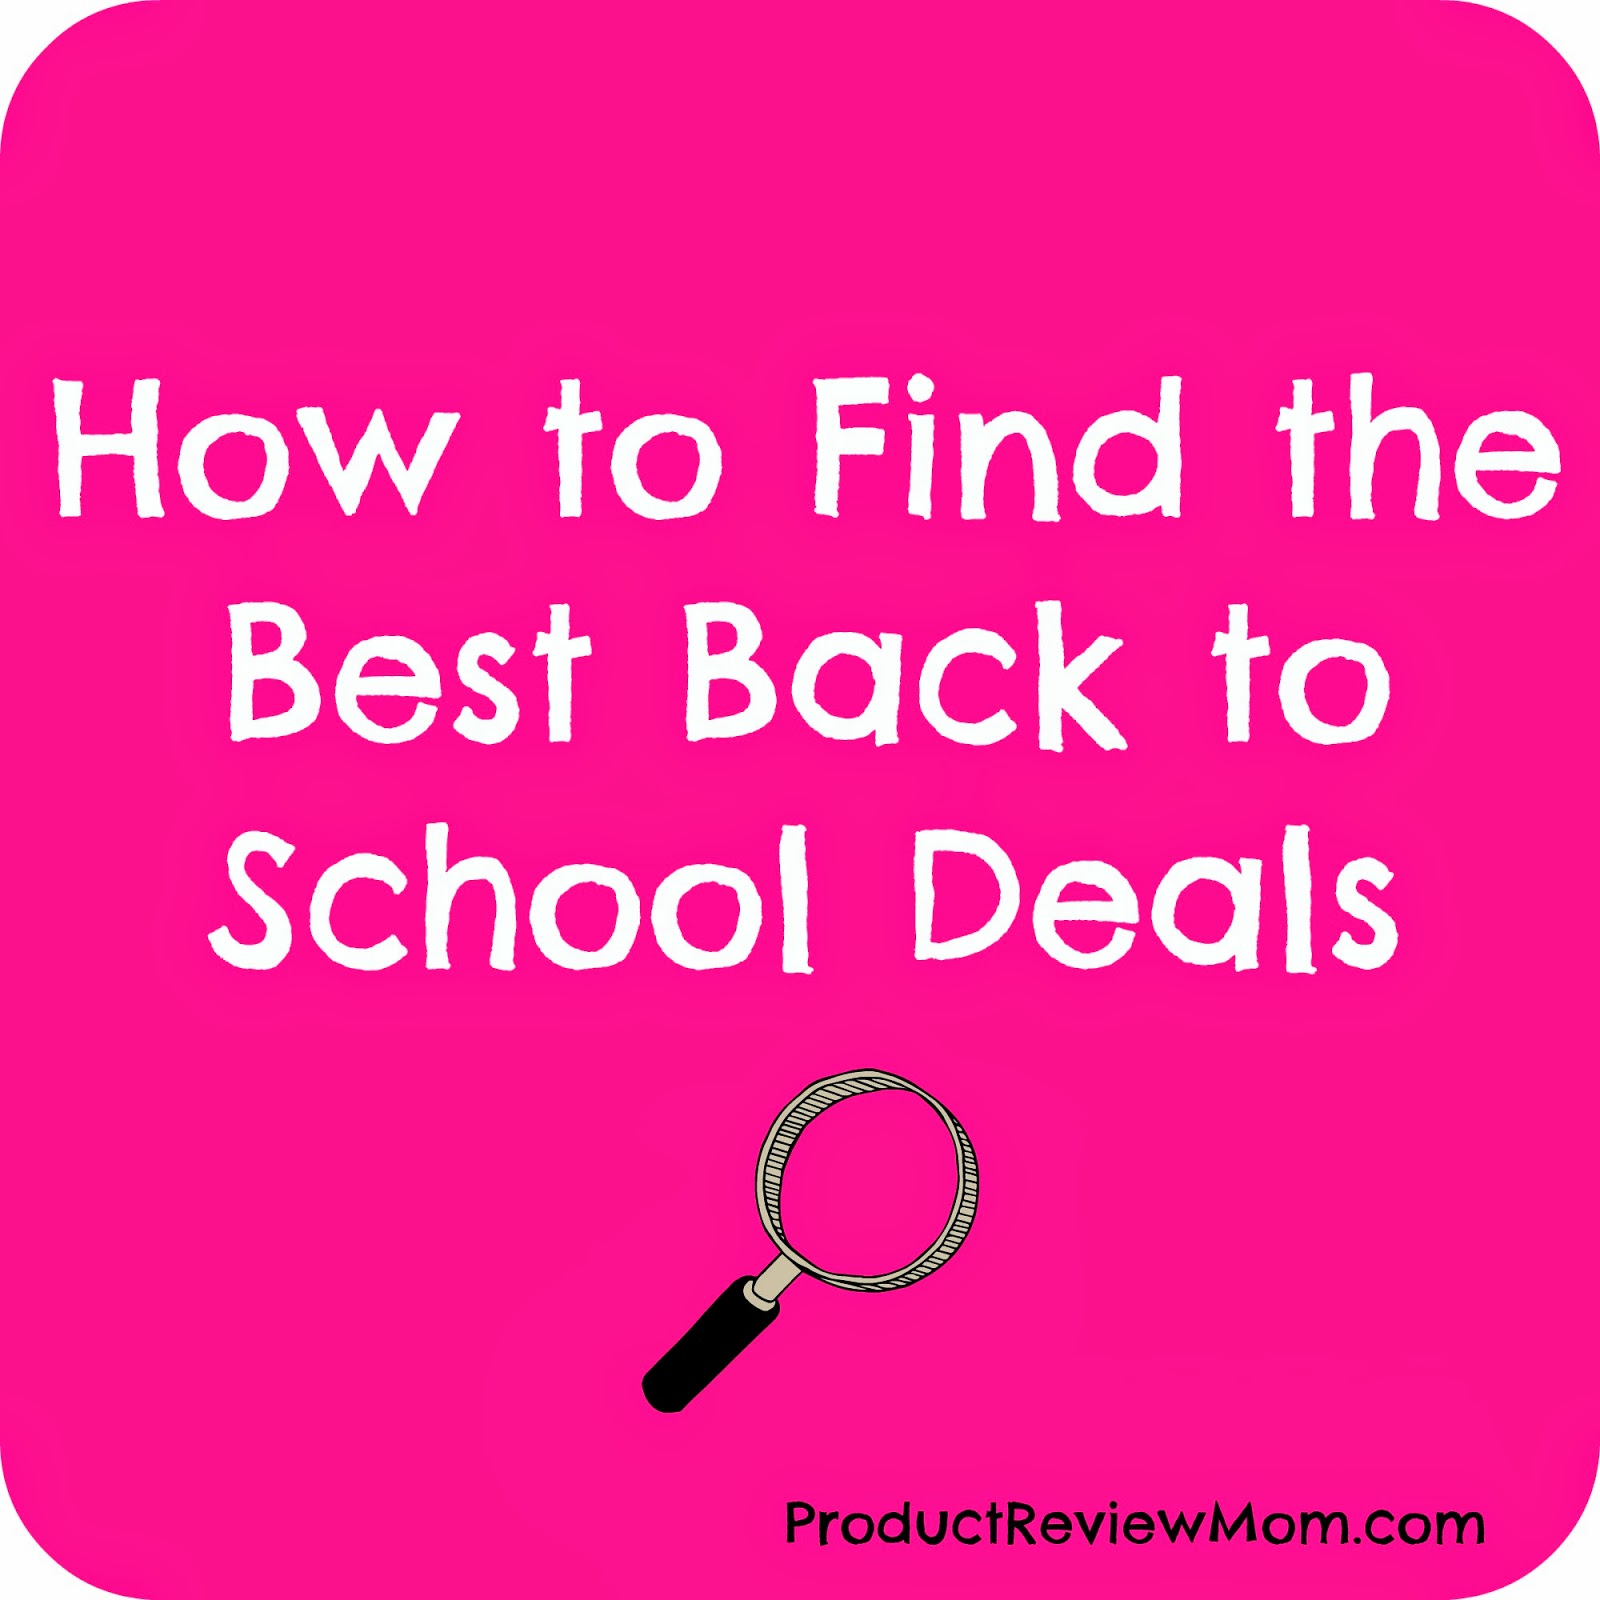 How to Find the Best Back to School Deals Online